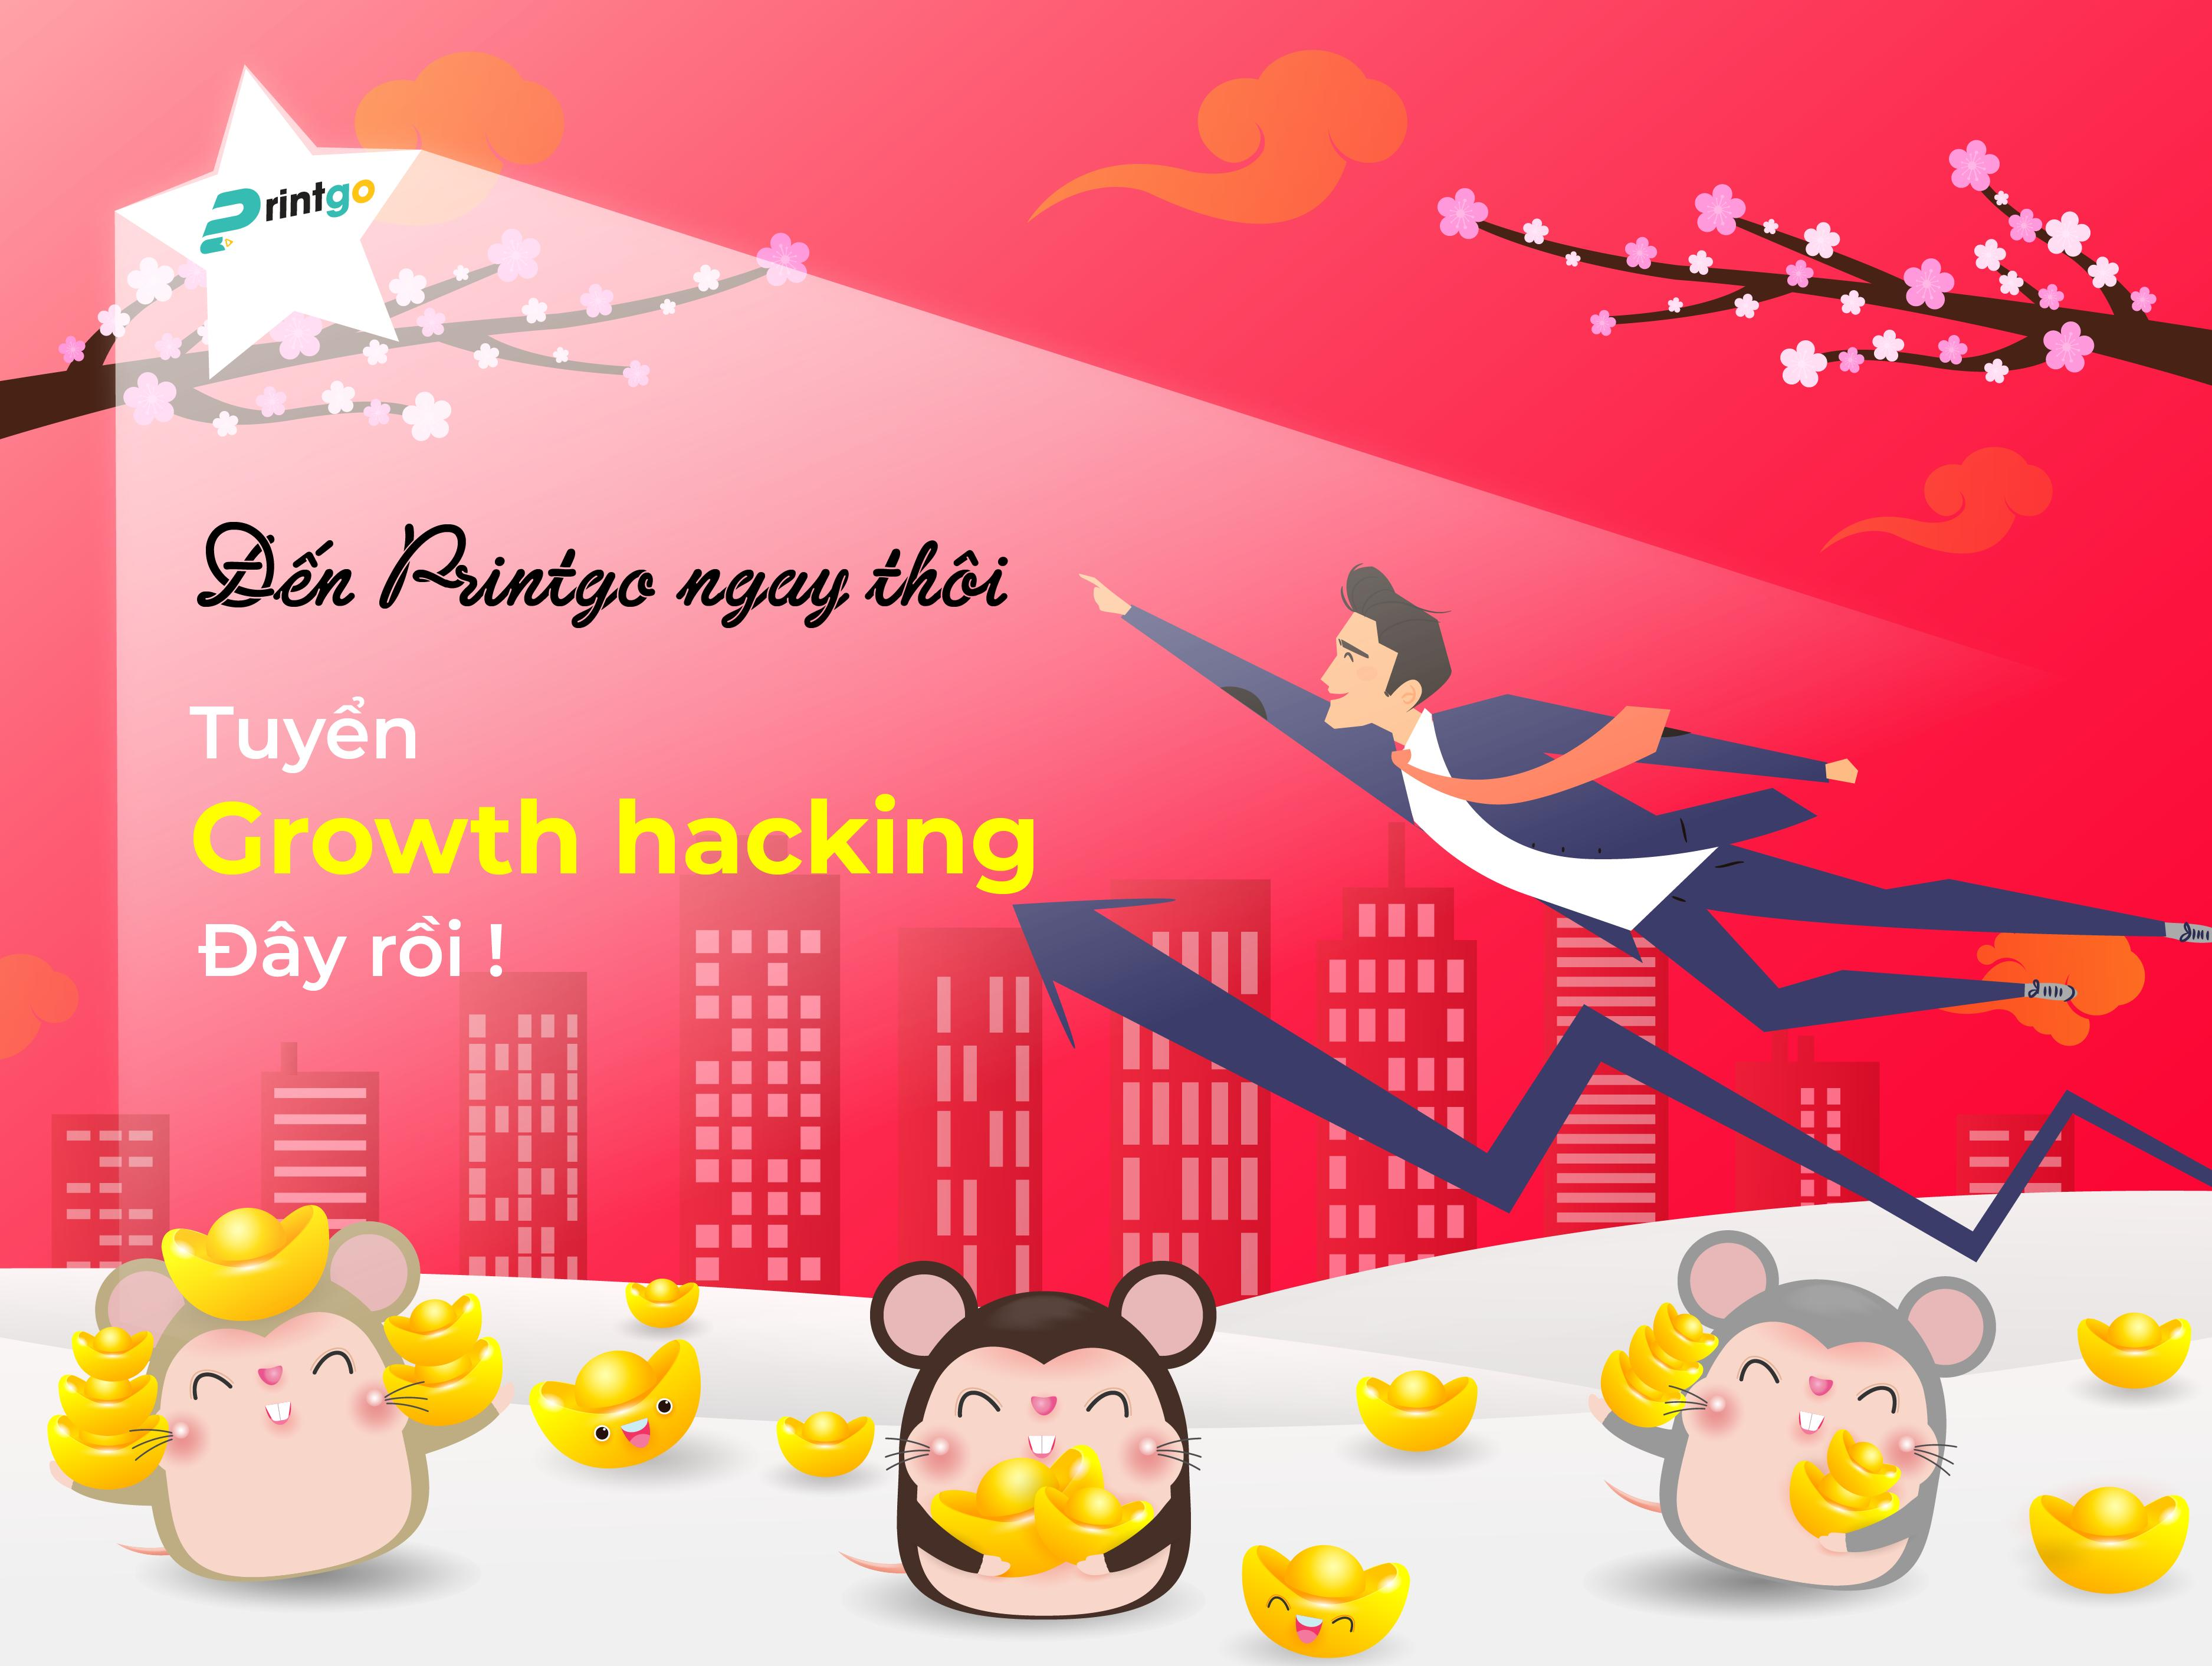 Tuyển dụng Growth hacking